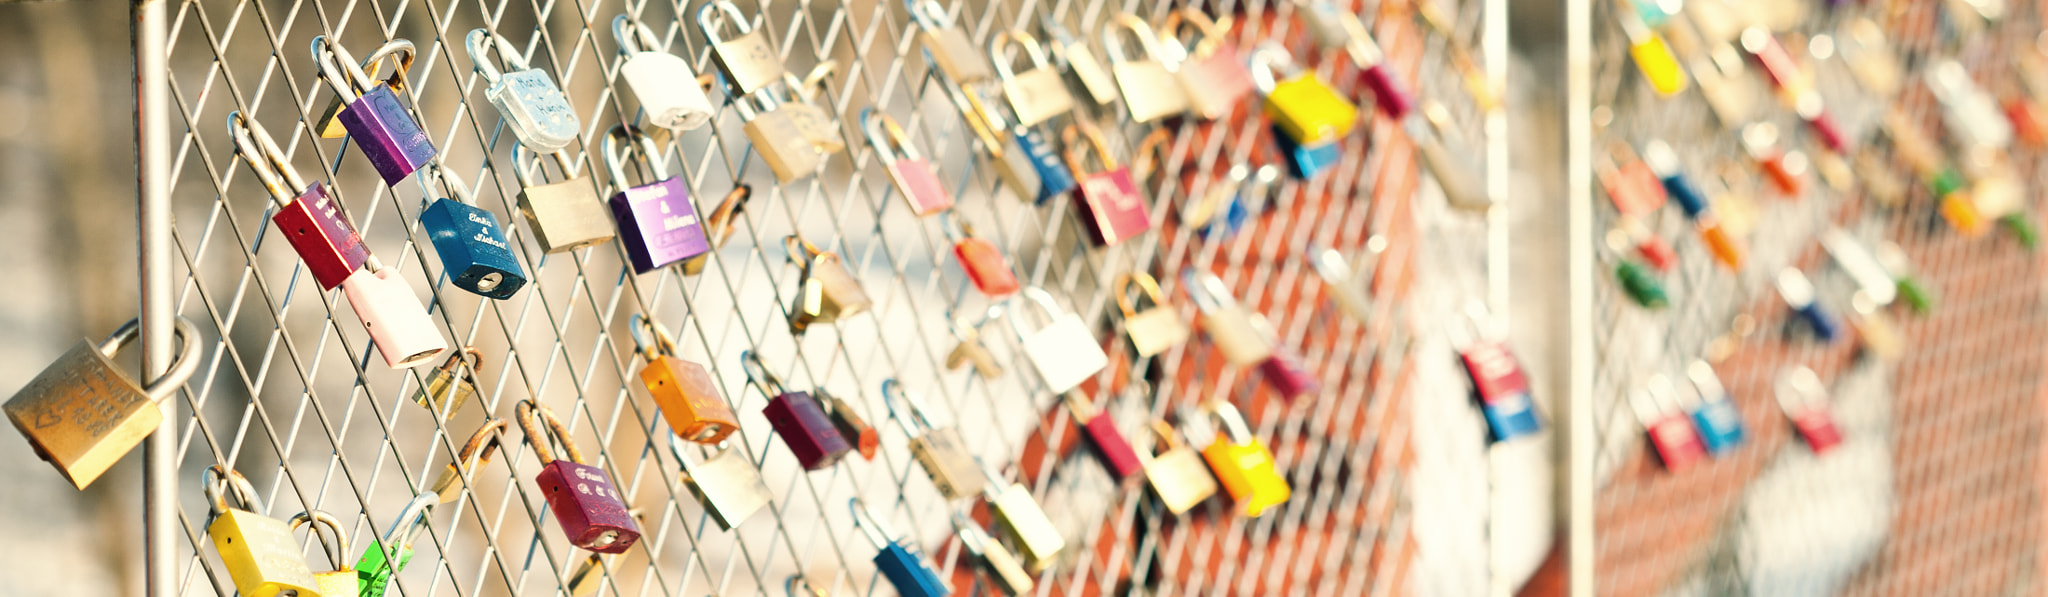 Photograph Under Lock and Key by Carsten Albrink on 500px